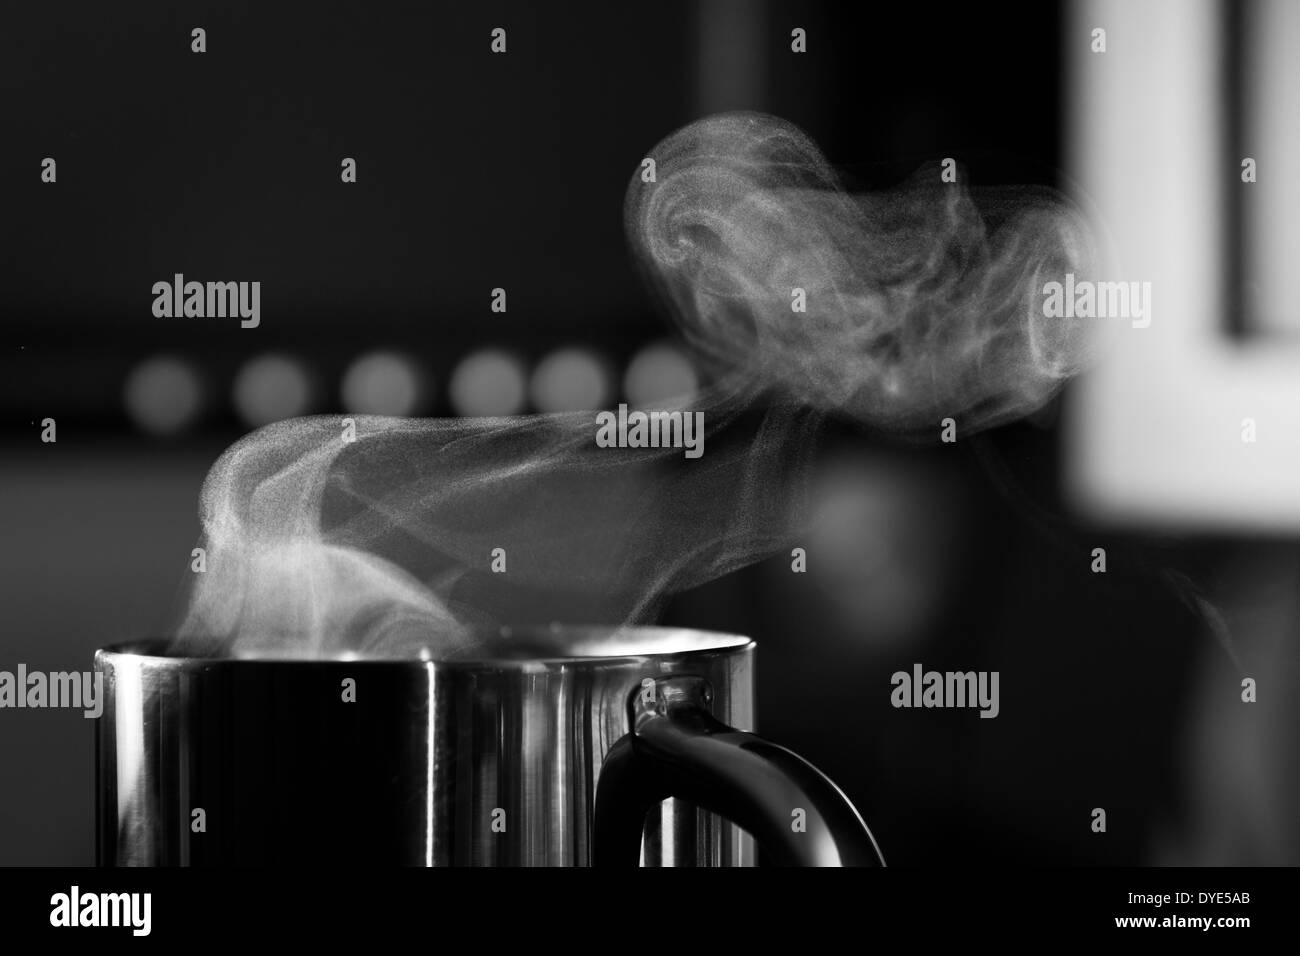 Steam rises from a mug of hot coffee - Stock Image